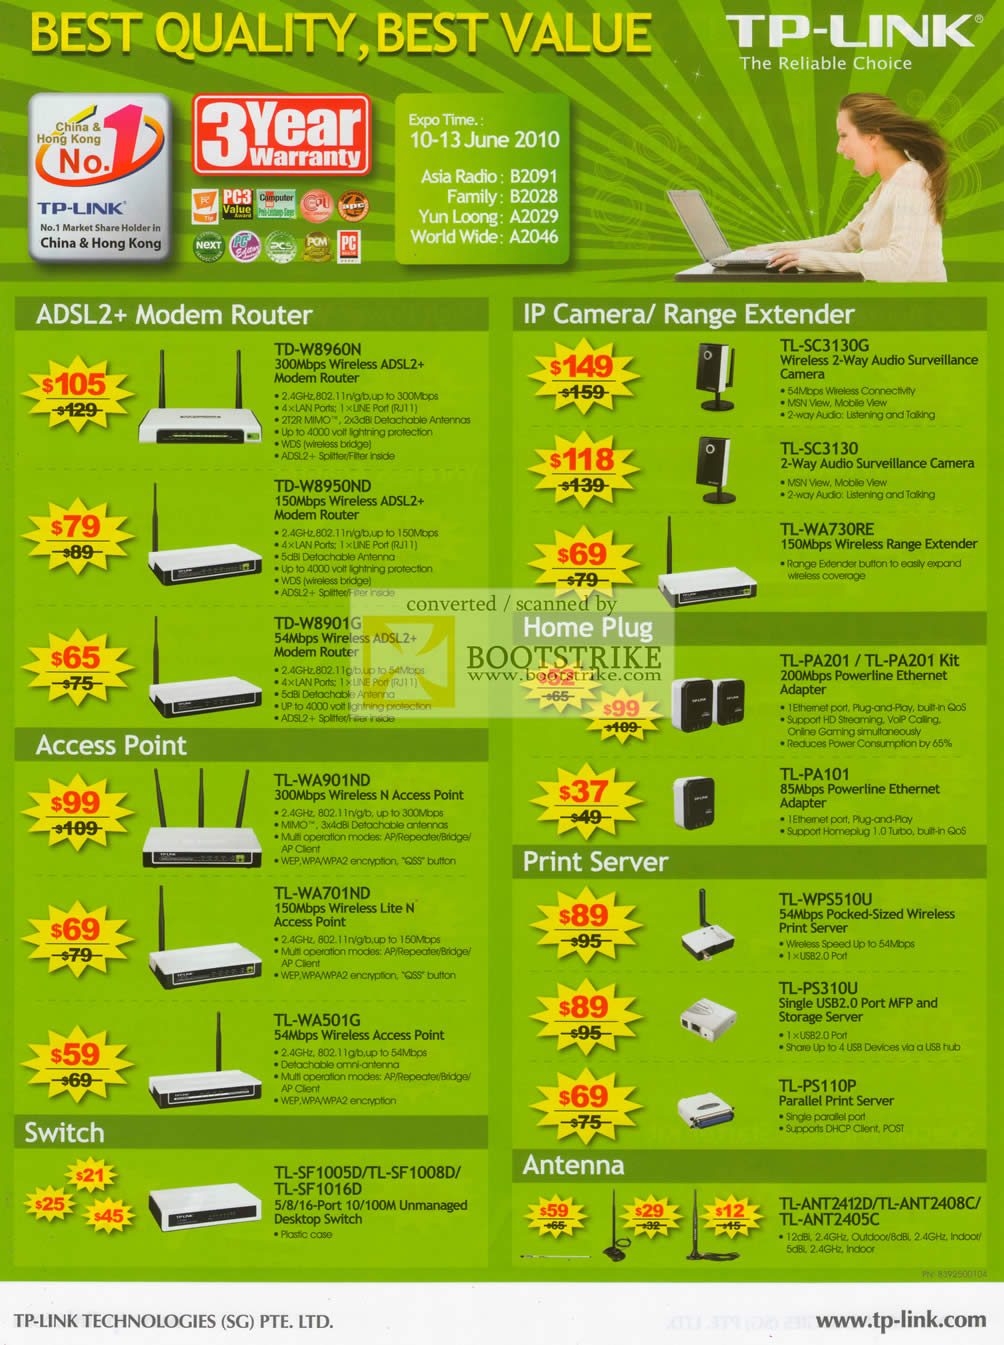 PC Show 2010 price list image brochure of Asia Radio TP Link ADSL Modem Router IPCam Range Extender HomePlug Switch Antenna Print Server